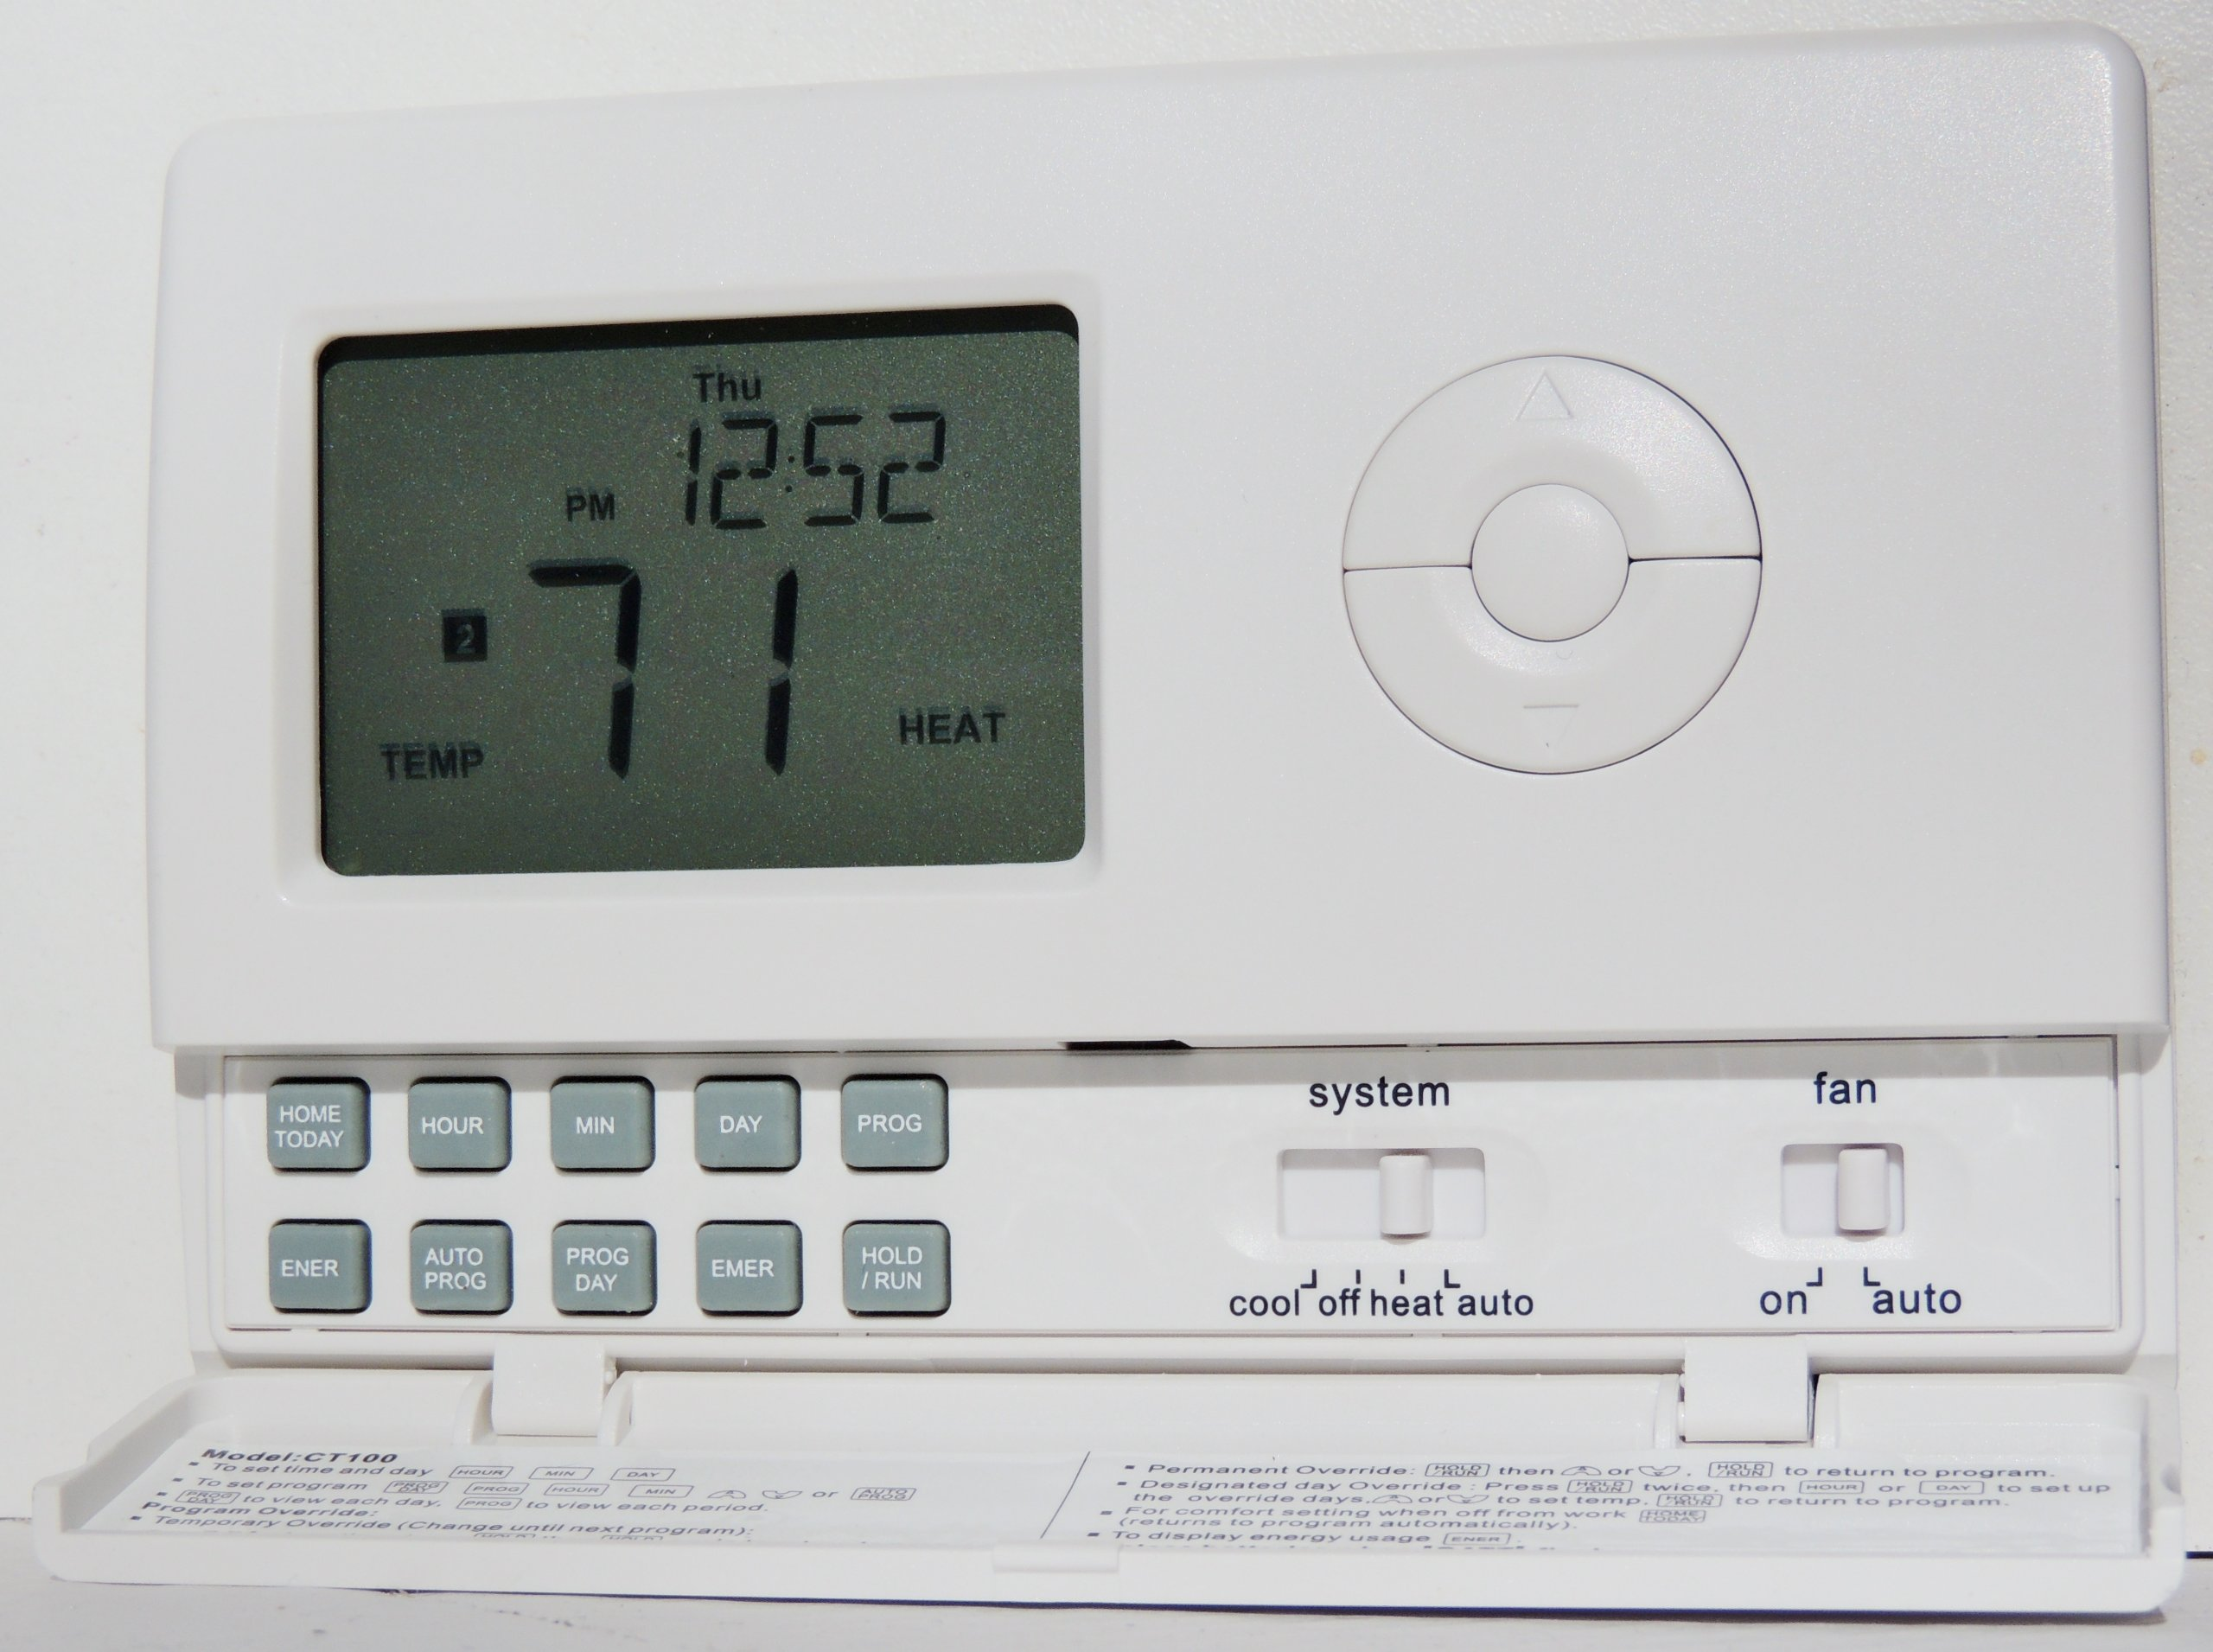 ControlTemp CT100 Standard Tamper Proof Thermostat by ControlTemp Thermostats (Image #2)